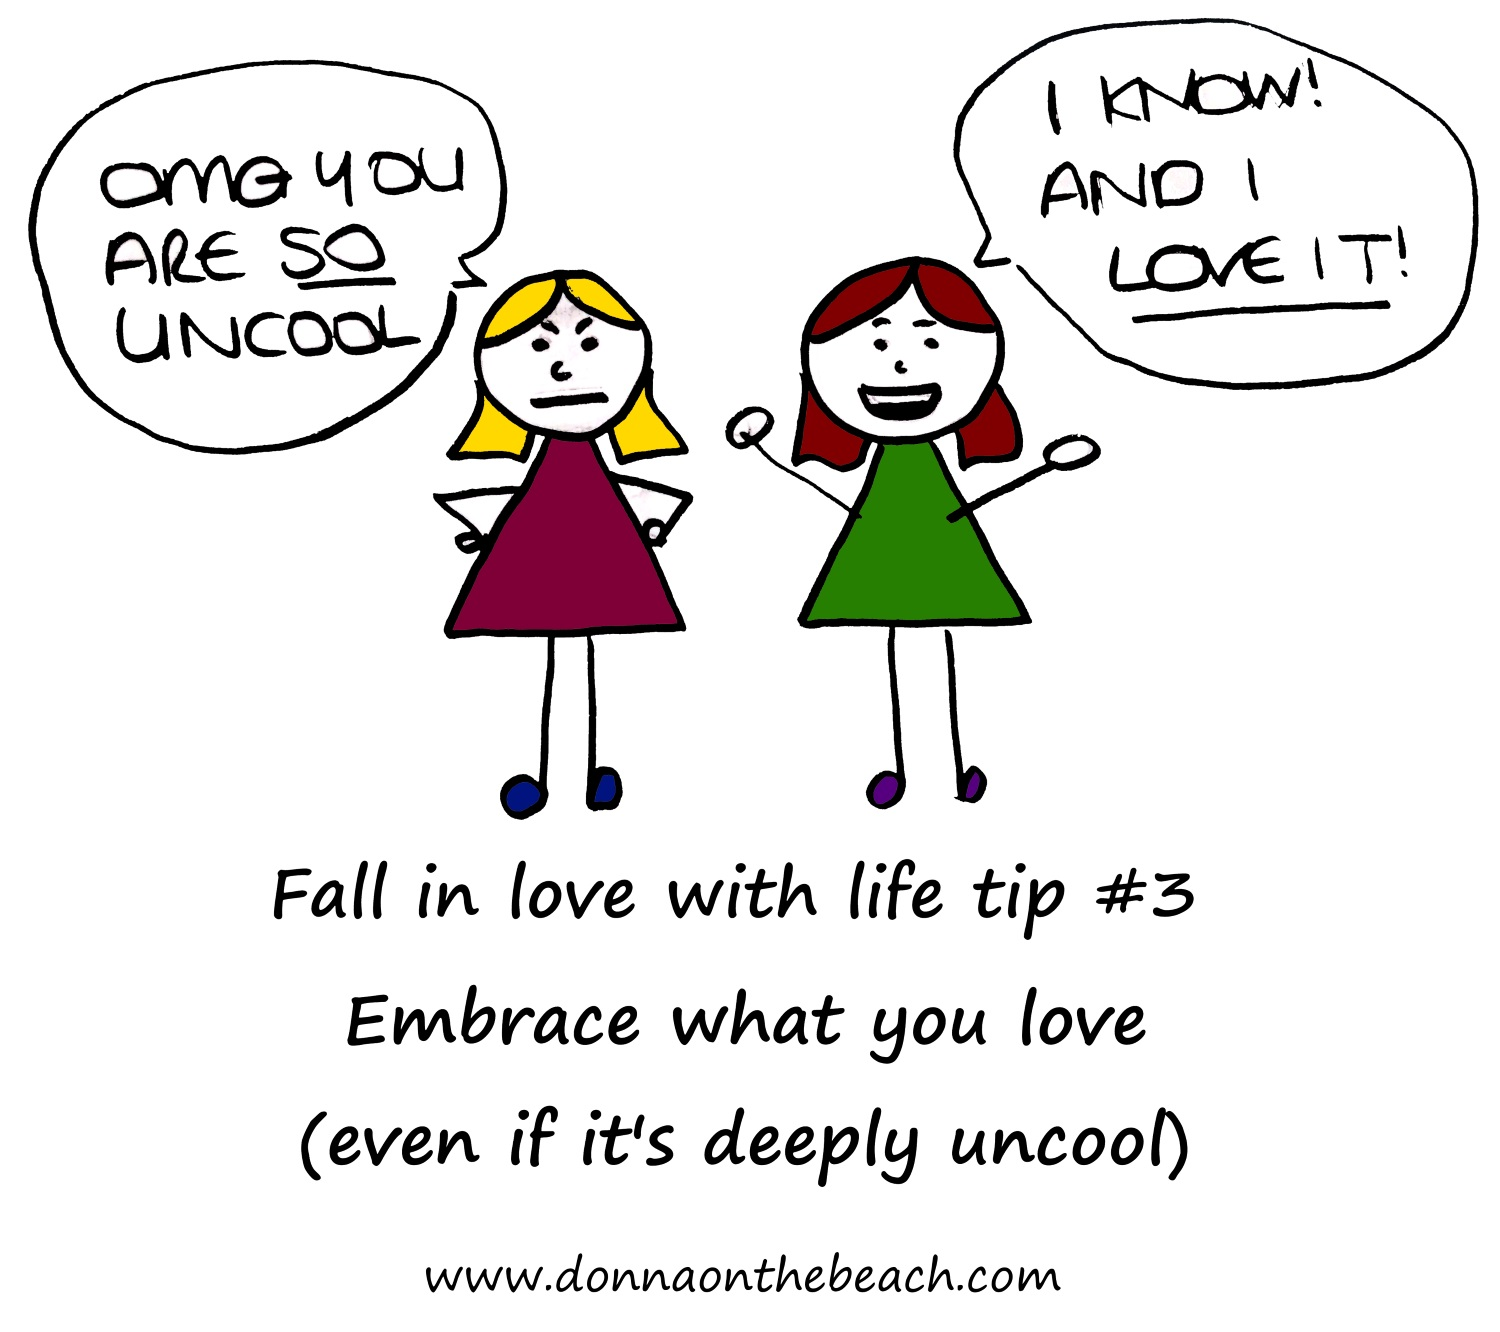 Love in with i you fall if What